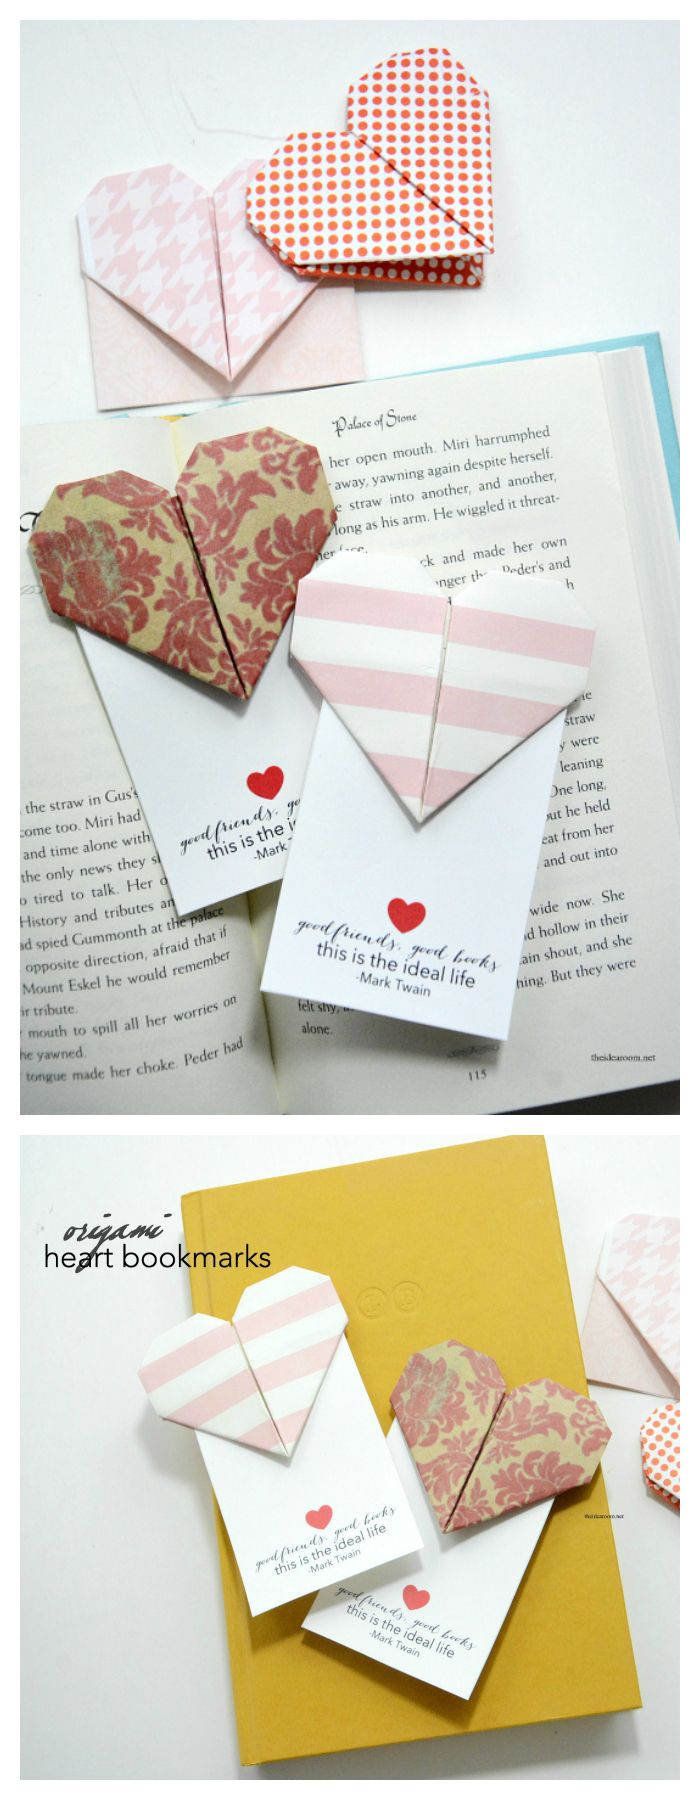 origami heart bookmarks - cute Valentine's gift idea for Sammie's class